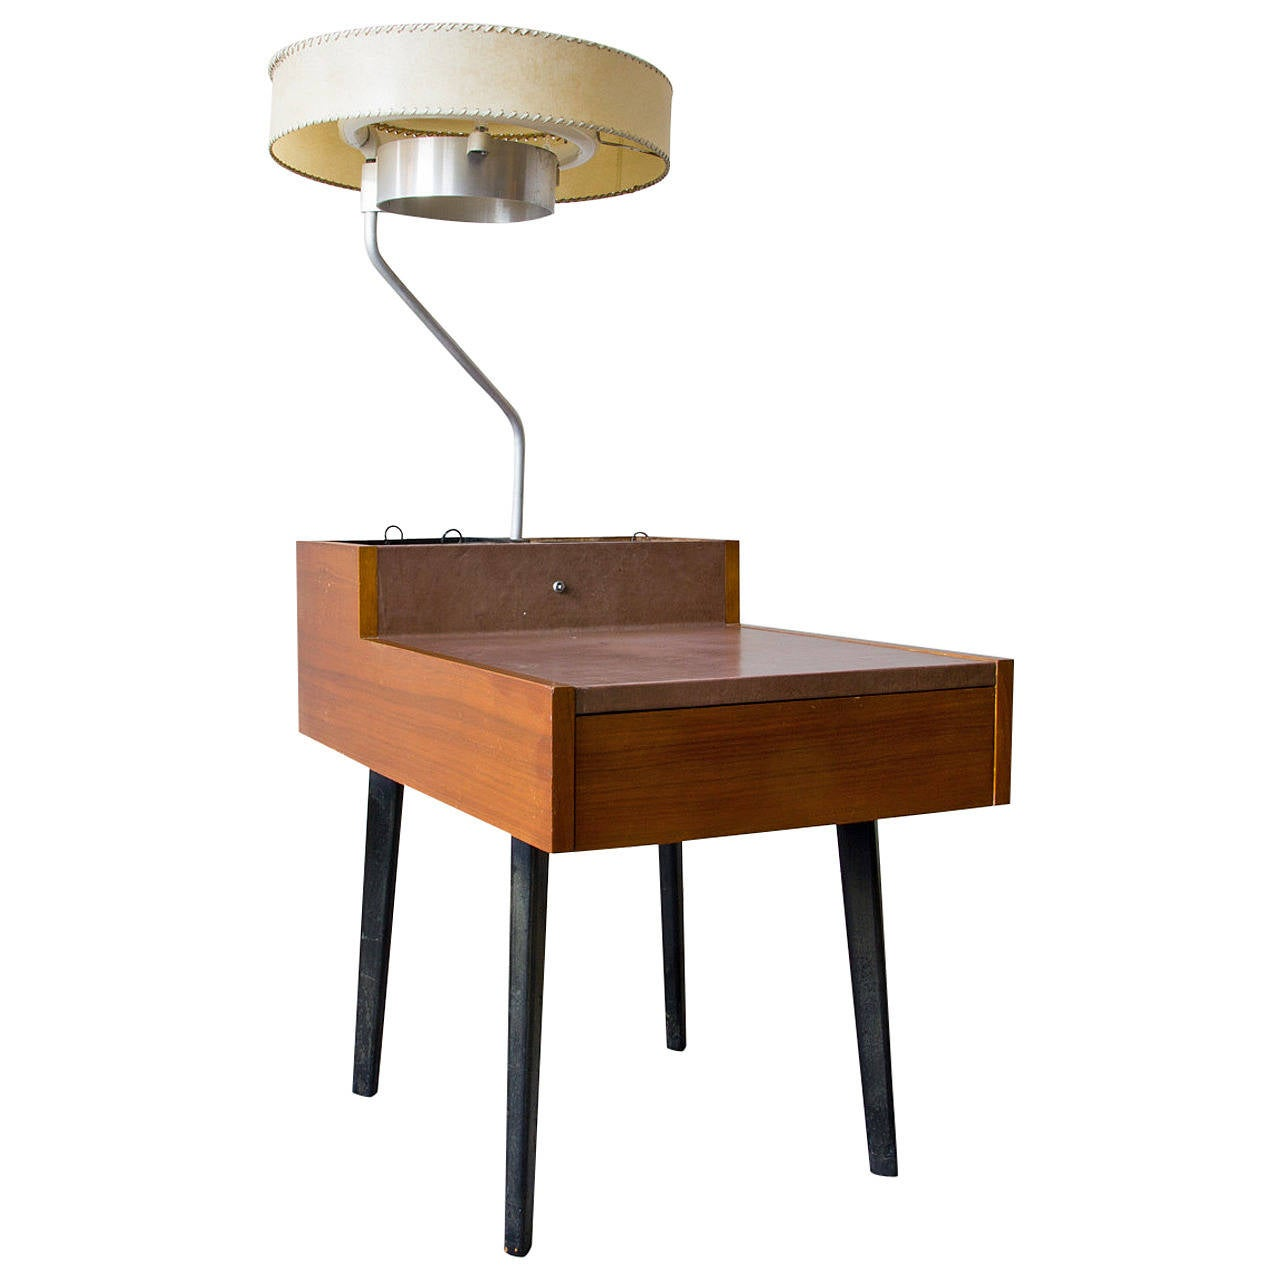 Transitional coffee table - George Nelson Planter And Lamp Table Model 4634 L